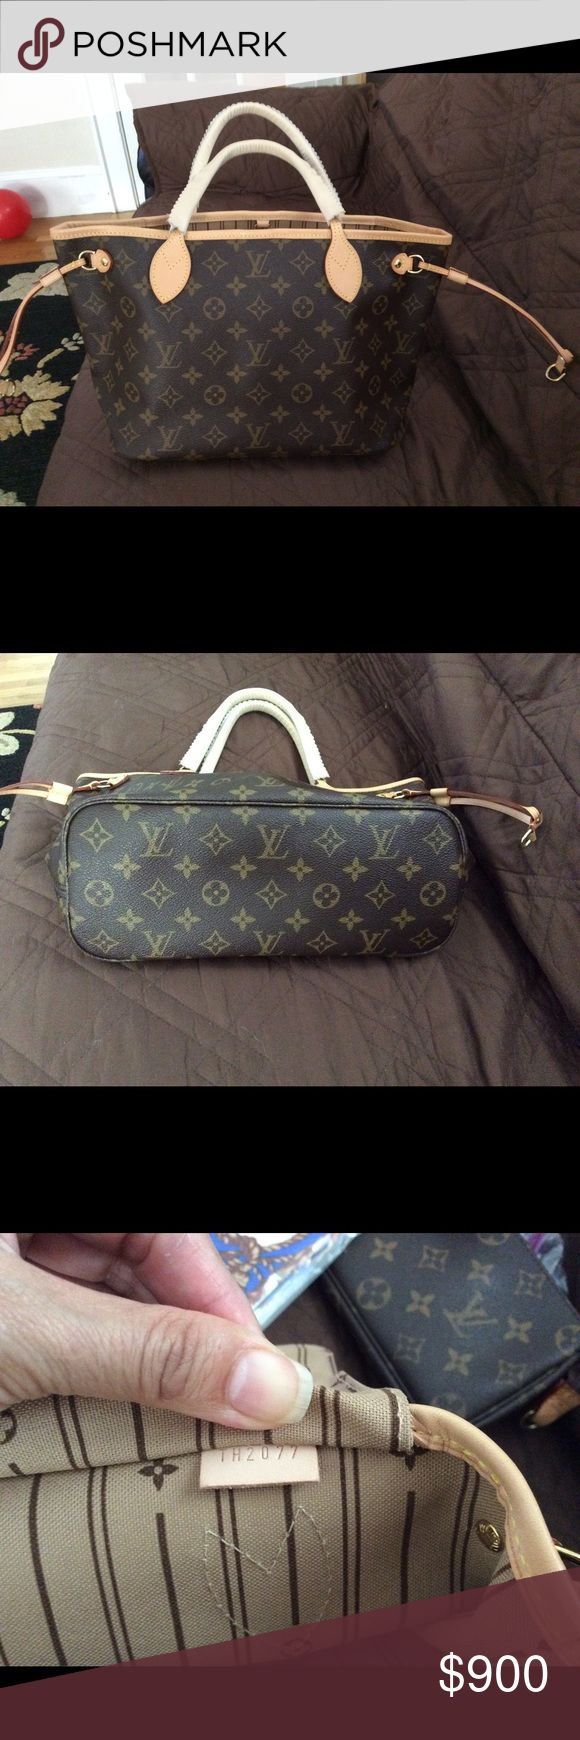 Authentic Louis Vuitton neverfull PM Like new,used one time,comes with dust bag,no box no receipt Louis Vuitton Bags Shoulder Bags